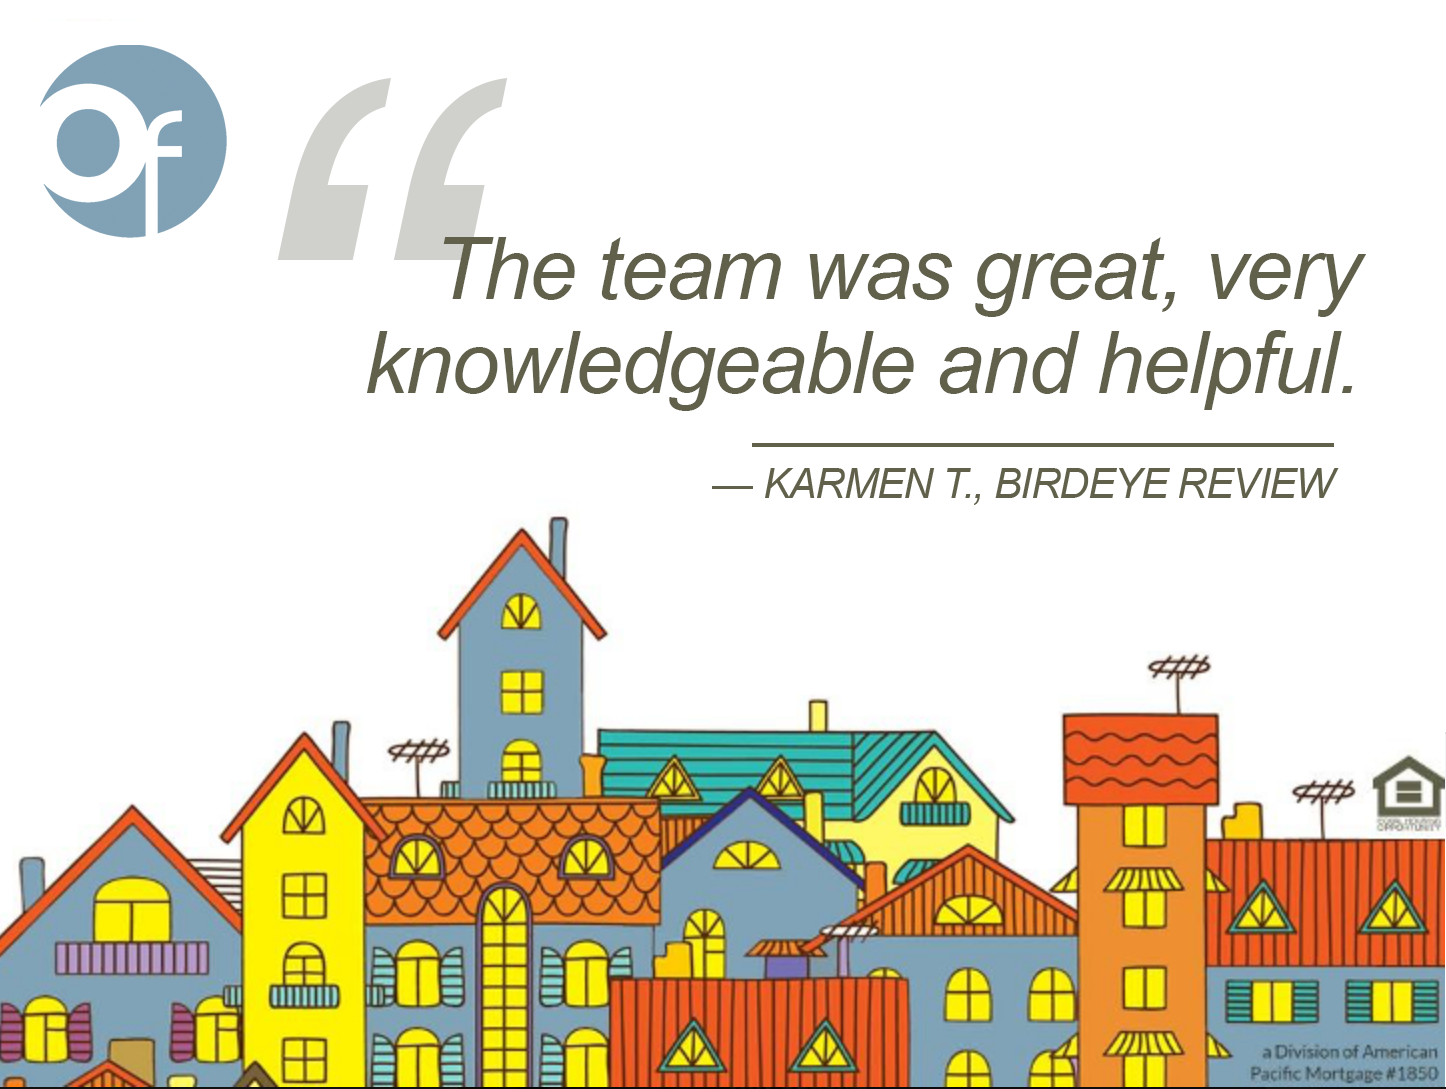 The team was great, very knowledgeable and helpful.